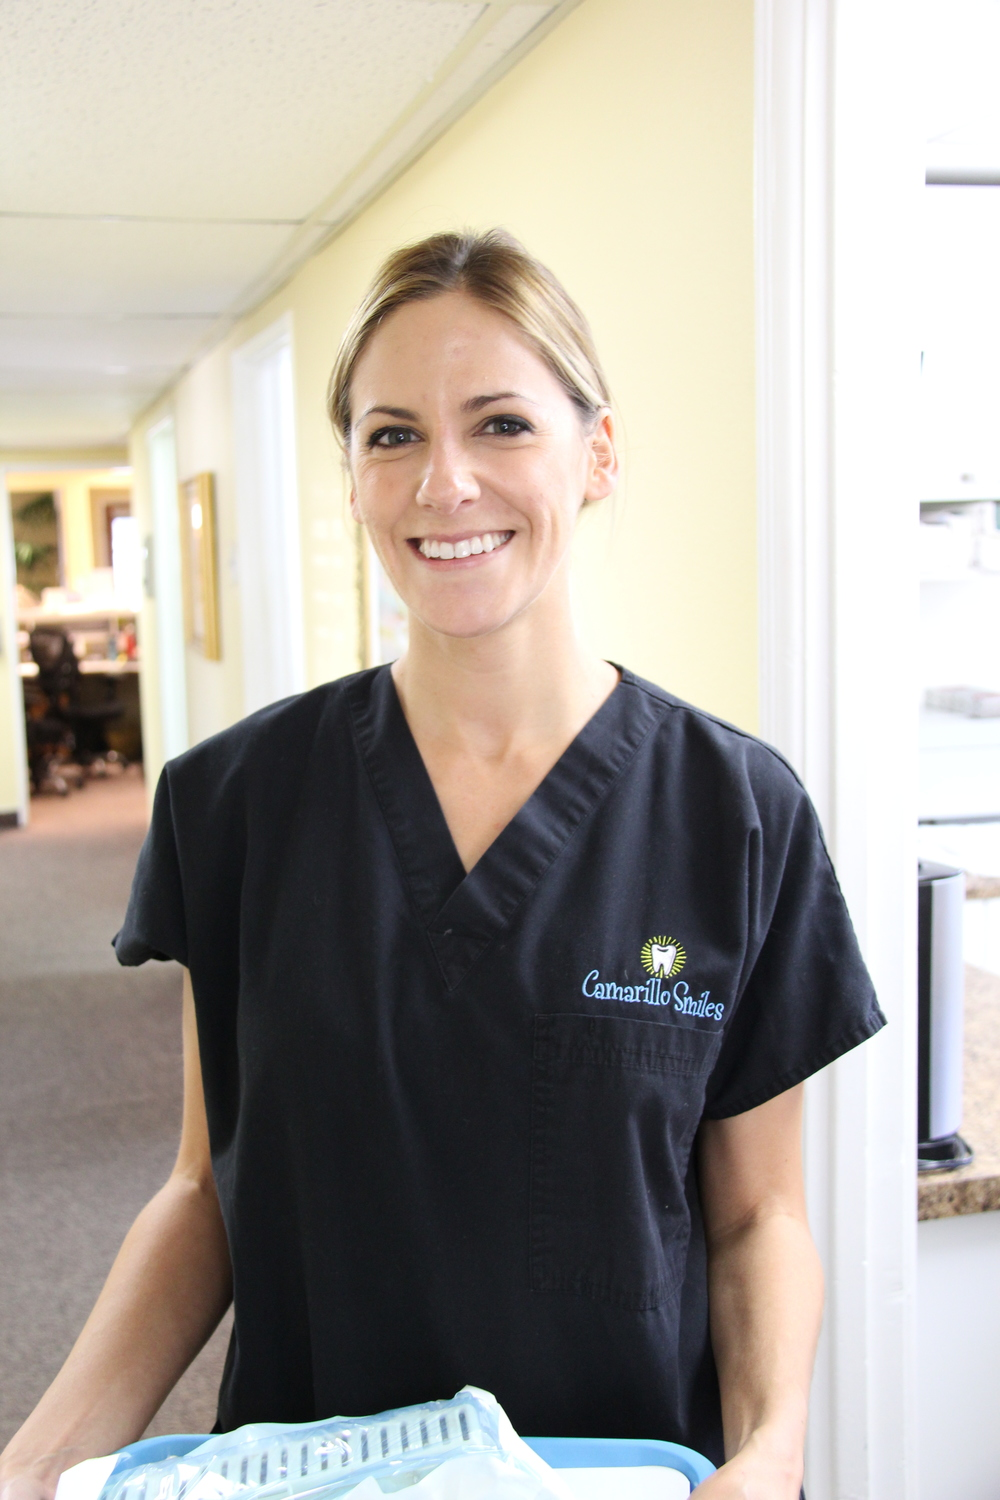 Crystal hygienist at Camarillo Smiles